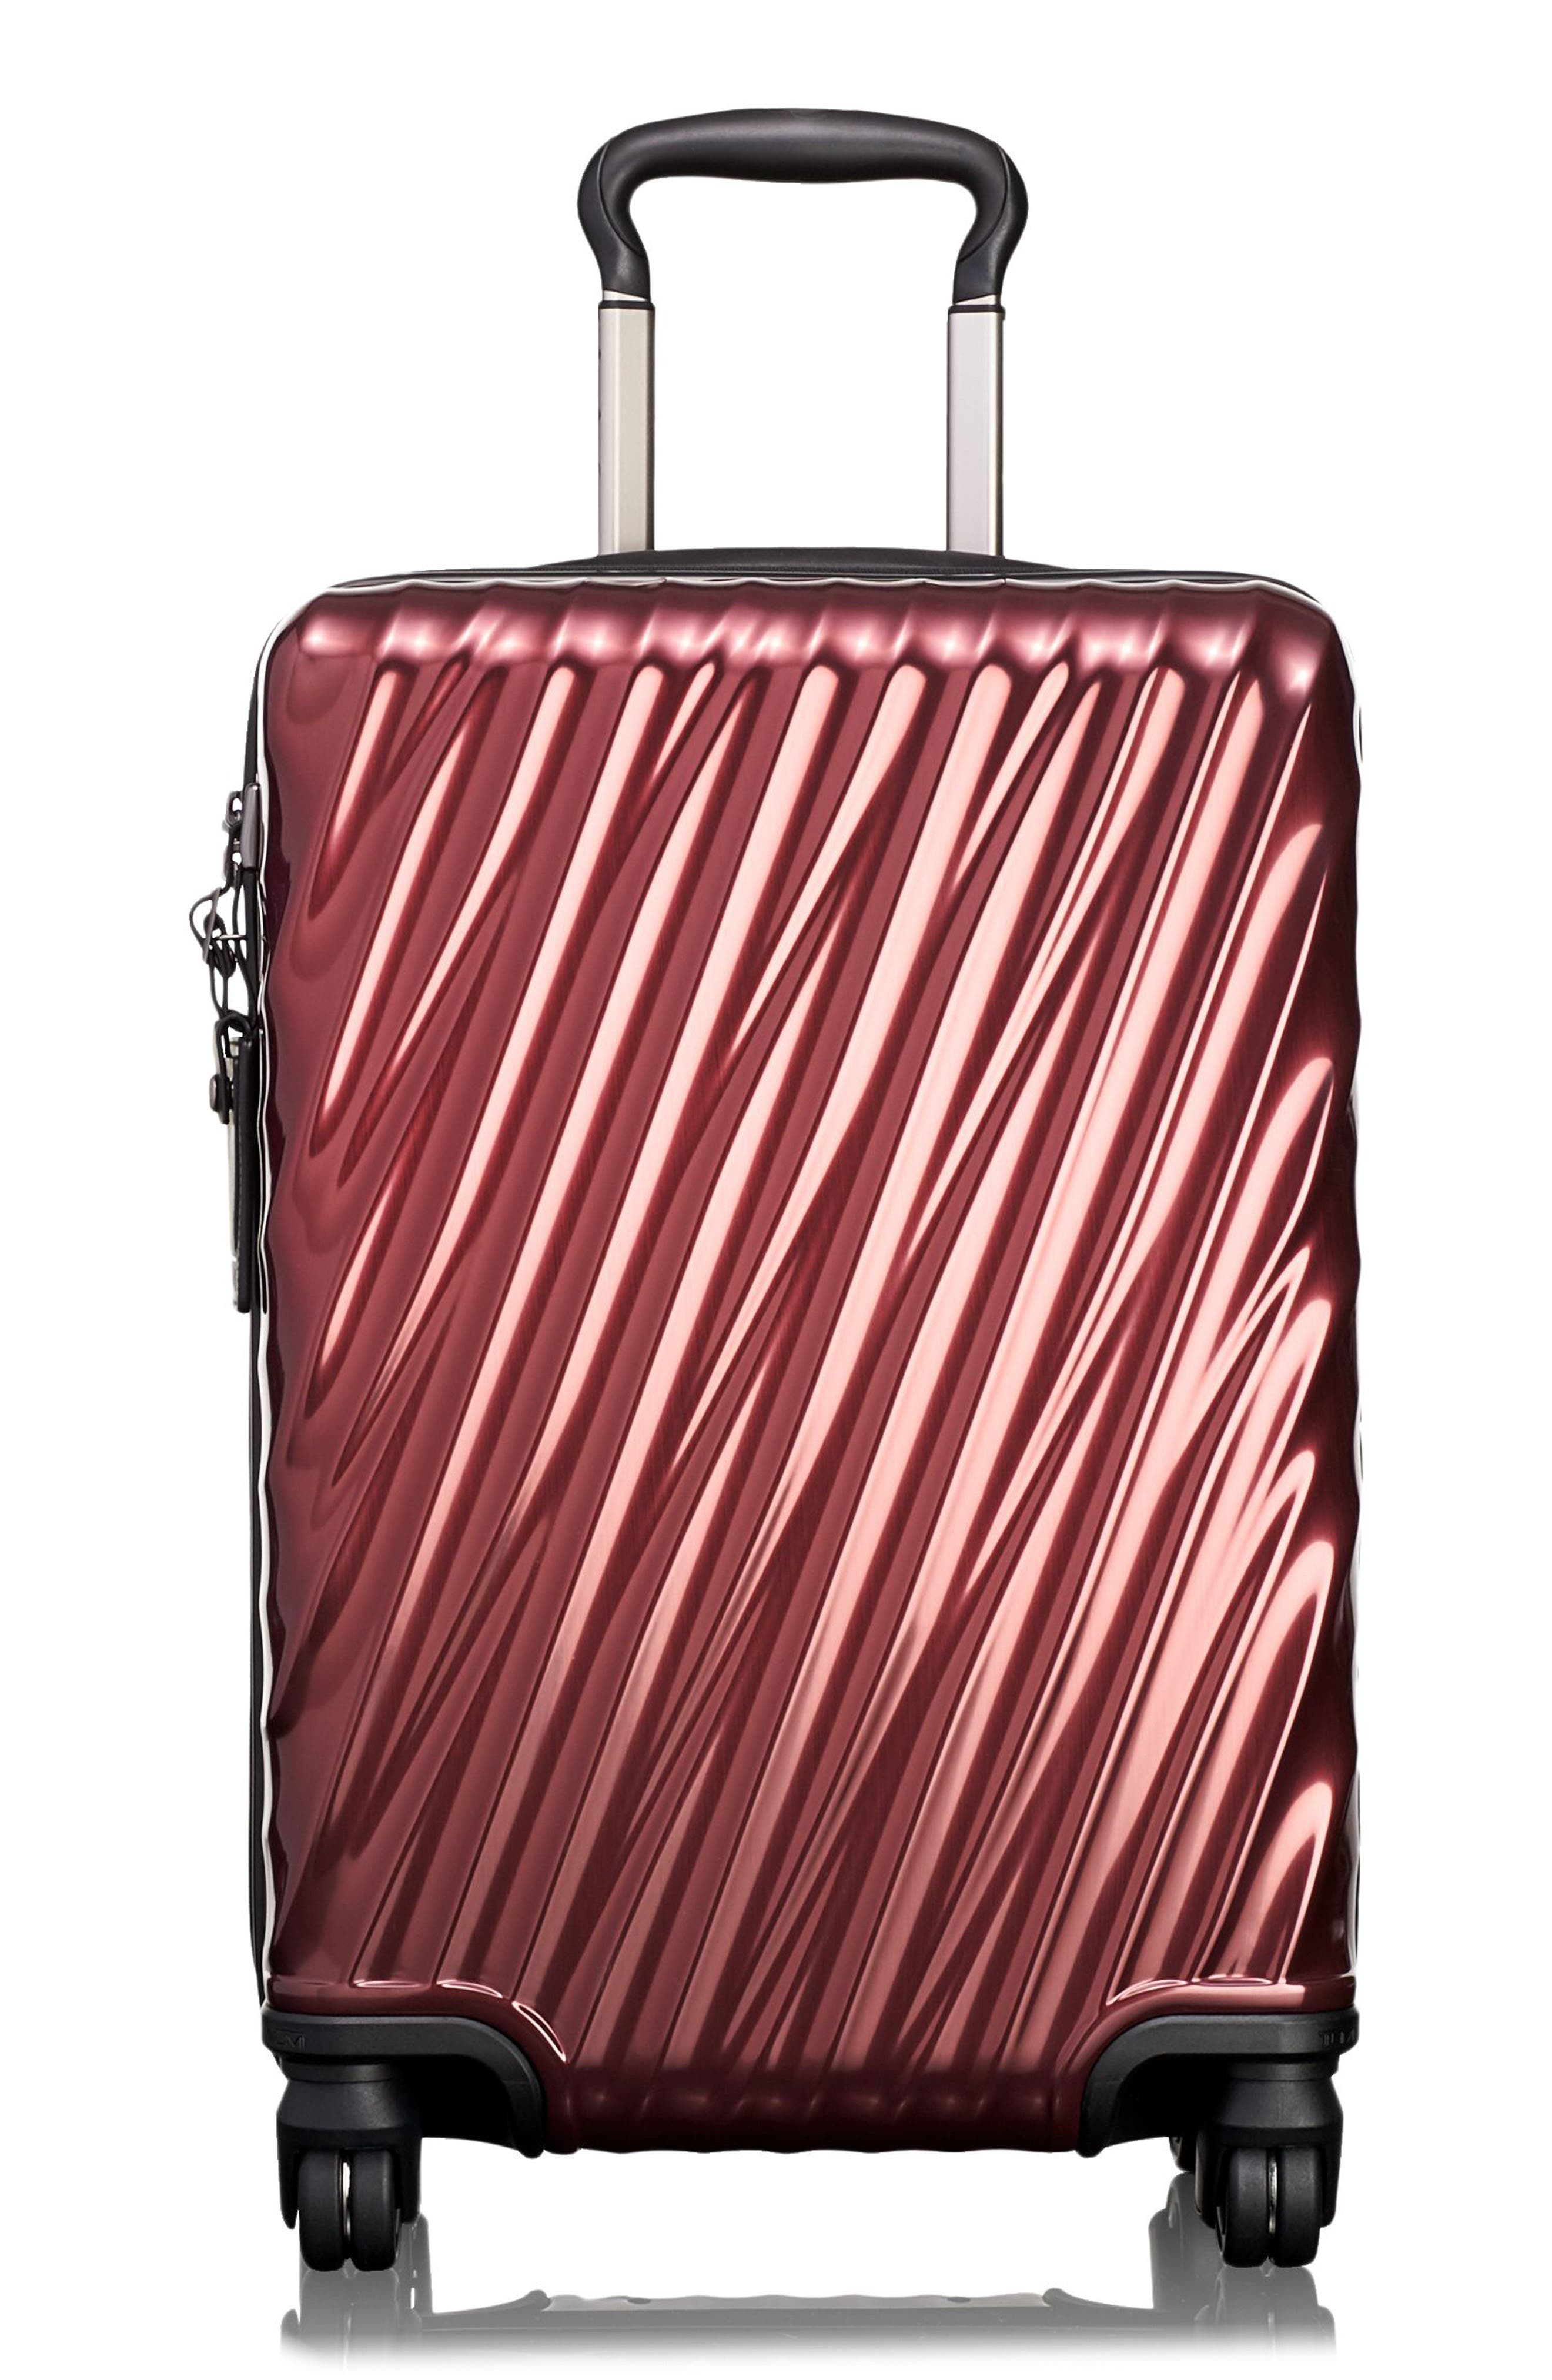 Tumi 19 Degree 21 Inch International Wheeled Carry-On